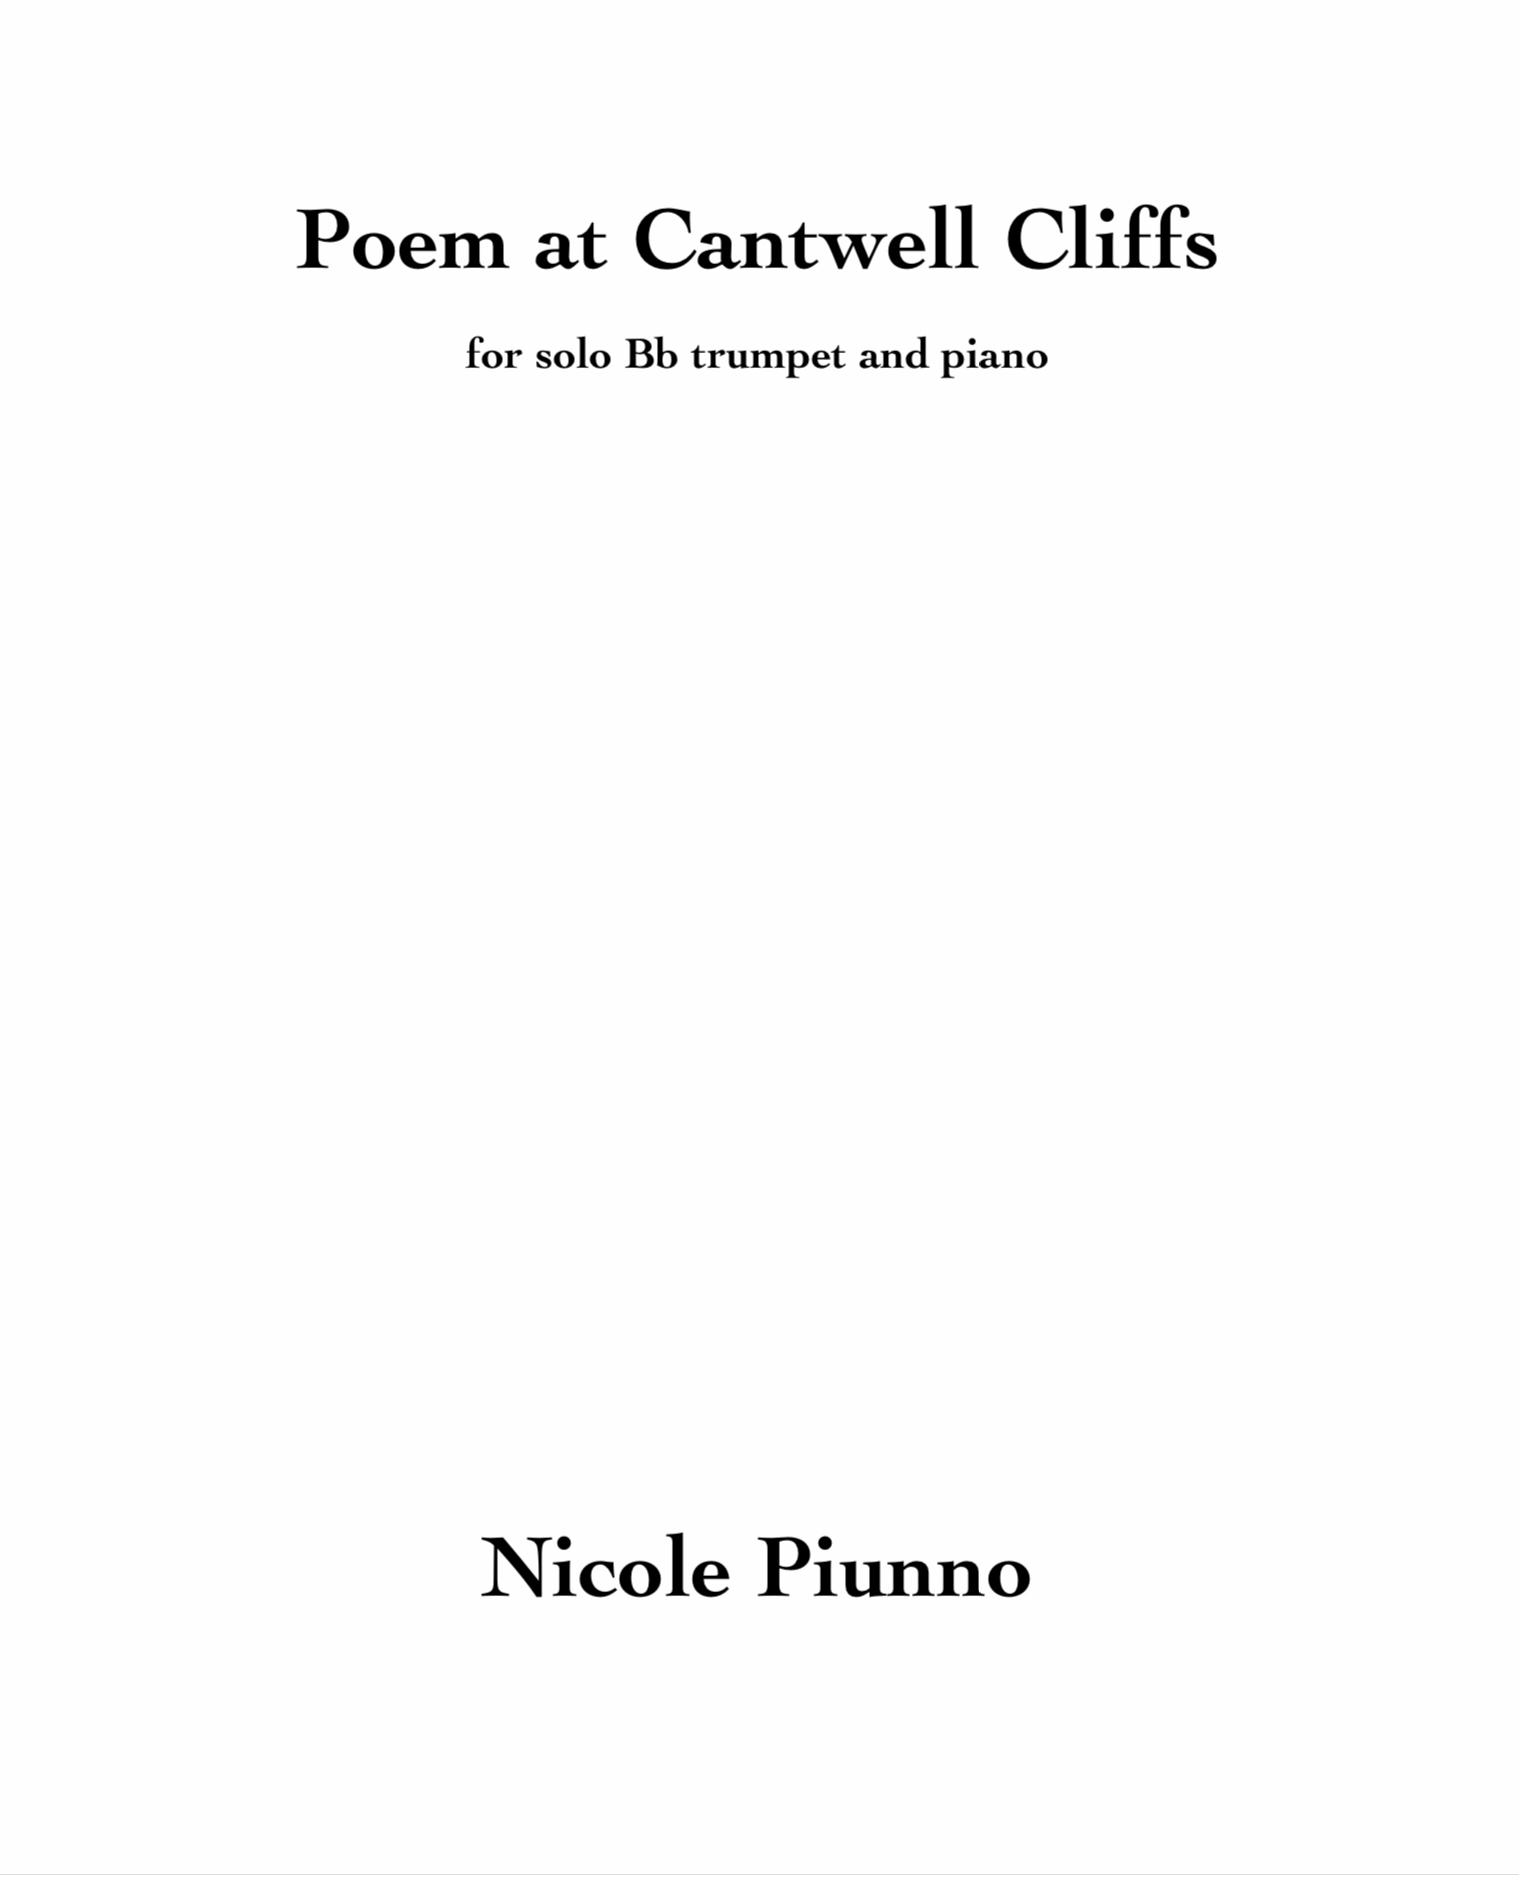 Poem At Cantwell Cliffs by Nicole Piunno